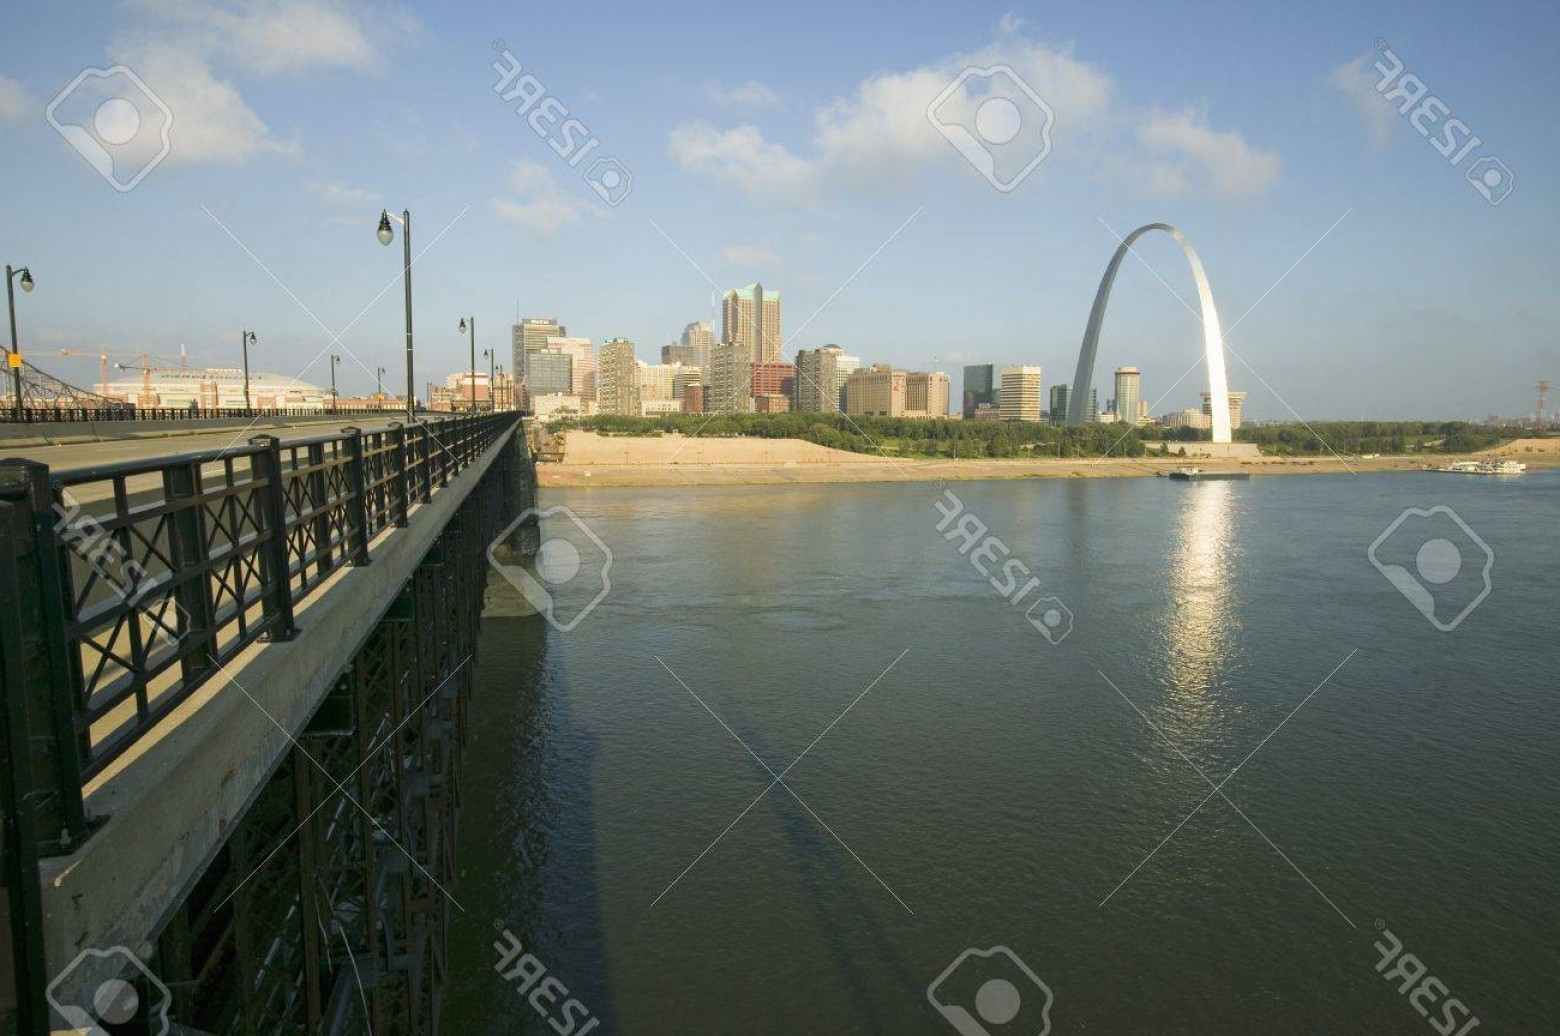 Arch Vector Illinios: Photogateway Arch And Skyline Of St Louis Missouri At Sunrise From Bridge In East St Louis Illinois On Th